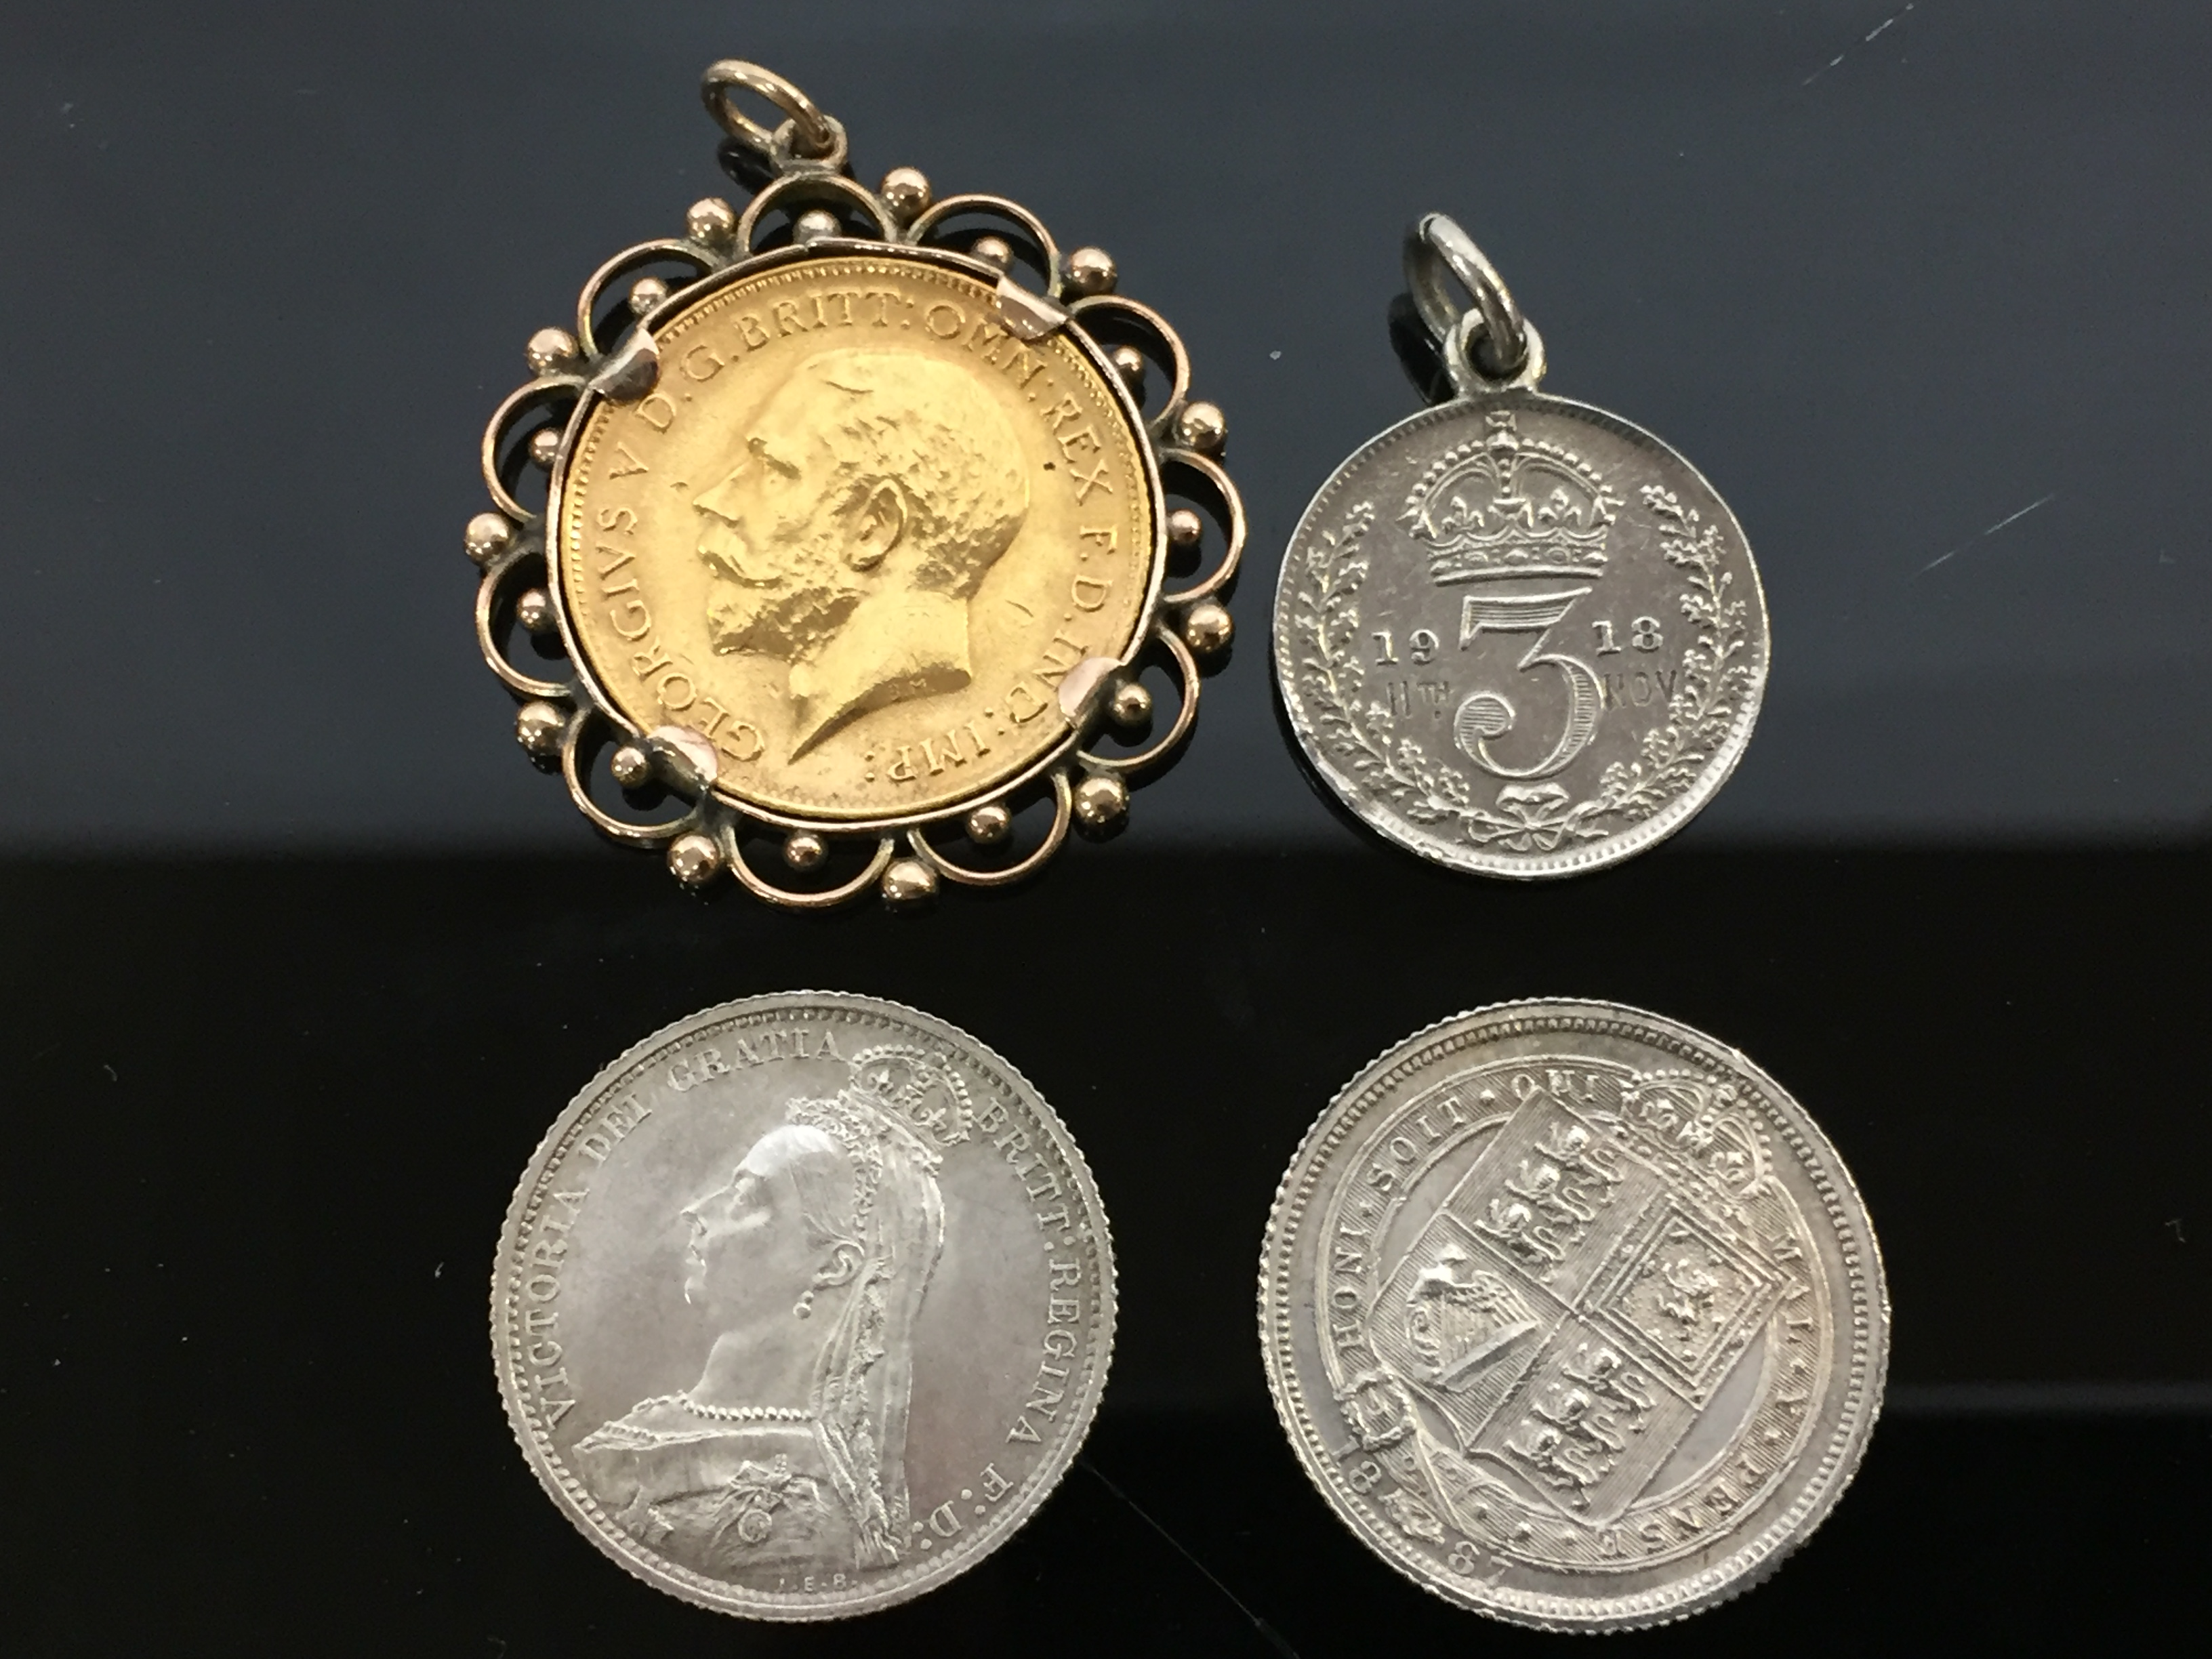 Lot 94 - A 1912 HALF GOLD SOVEREIGN IN GOLD PENDANT MOUNT,